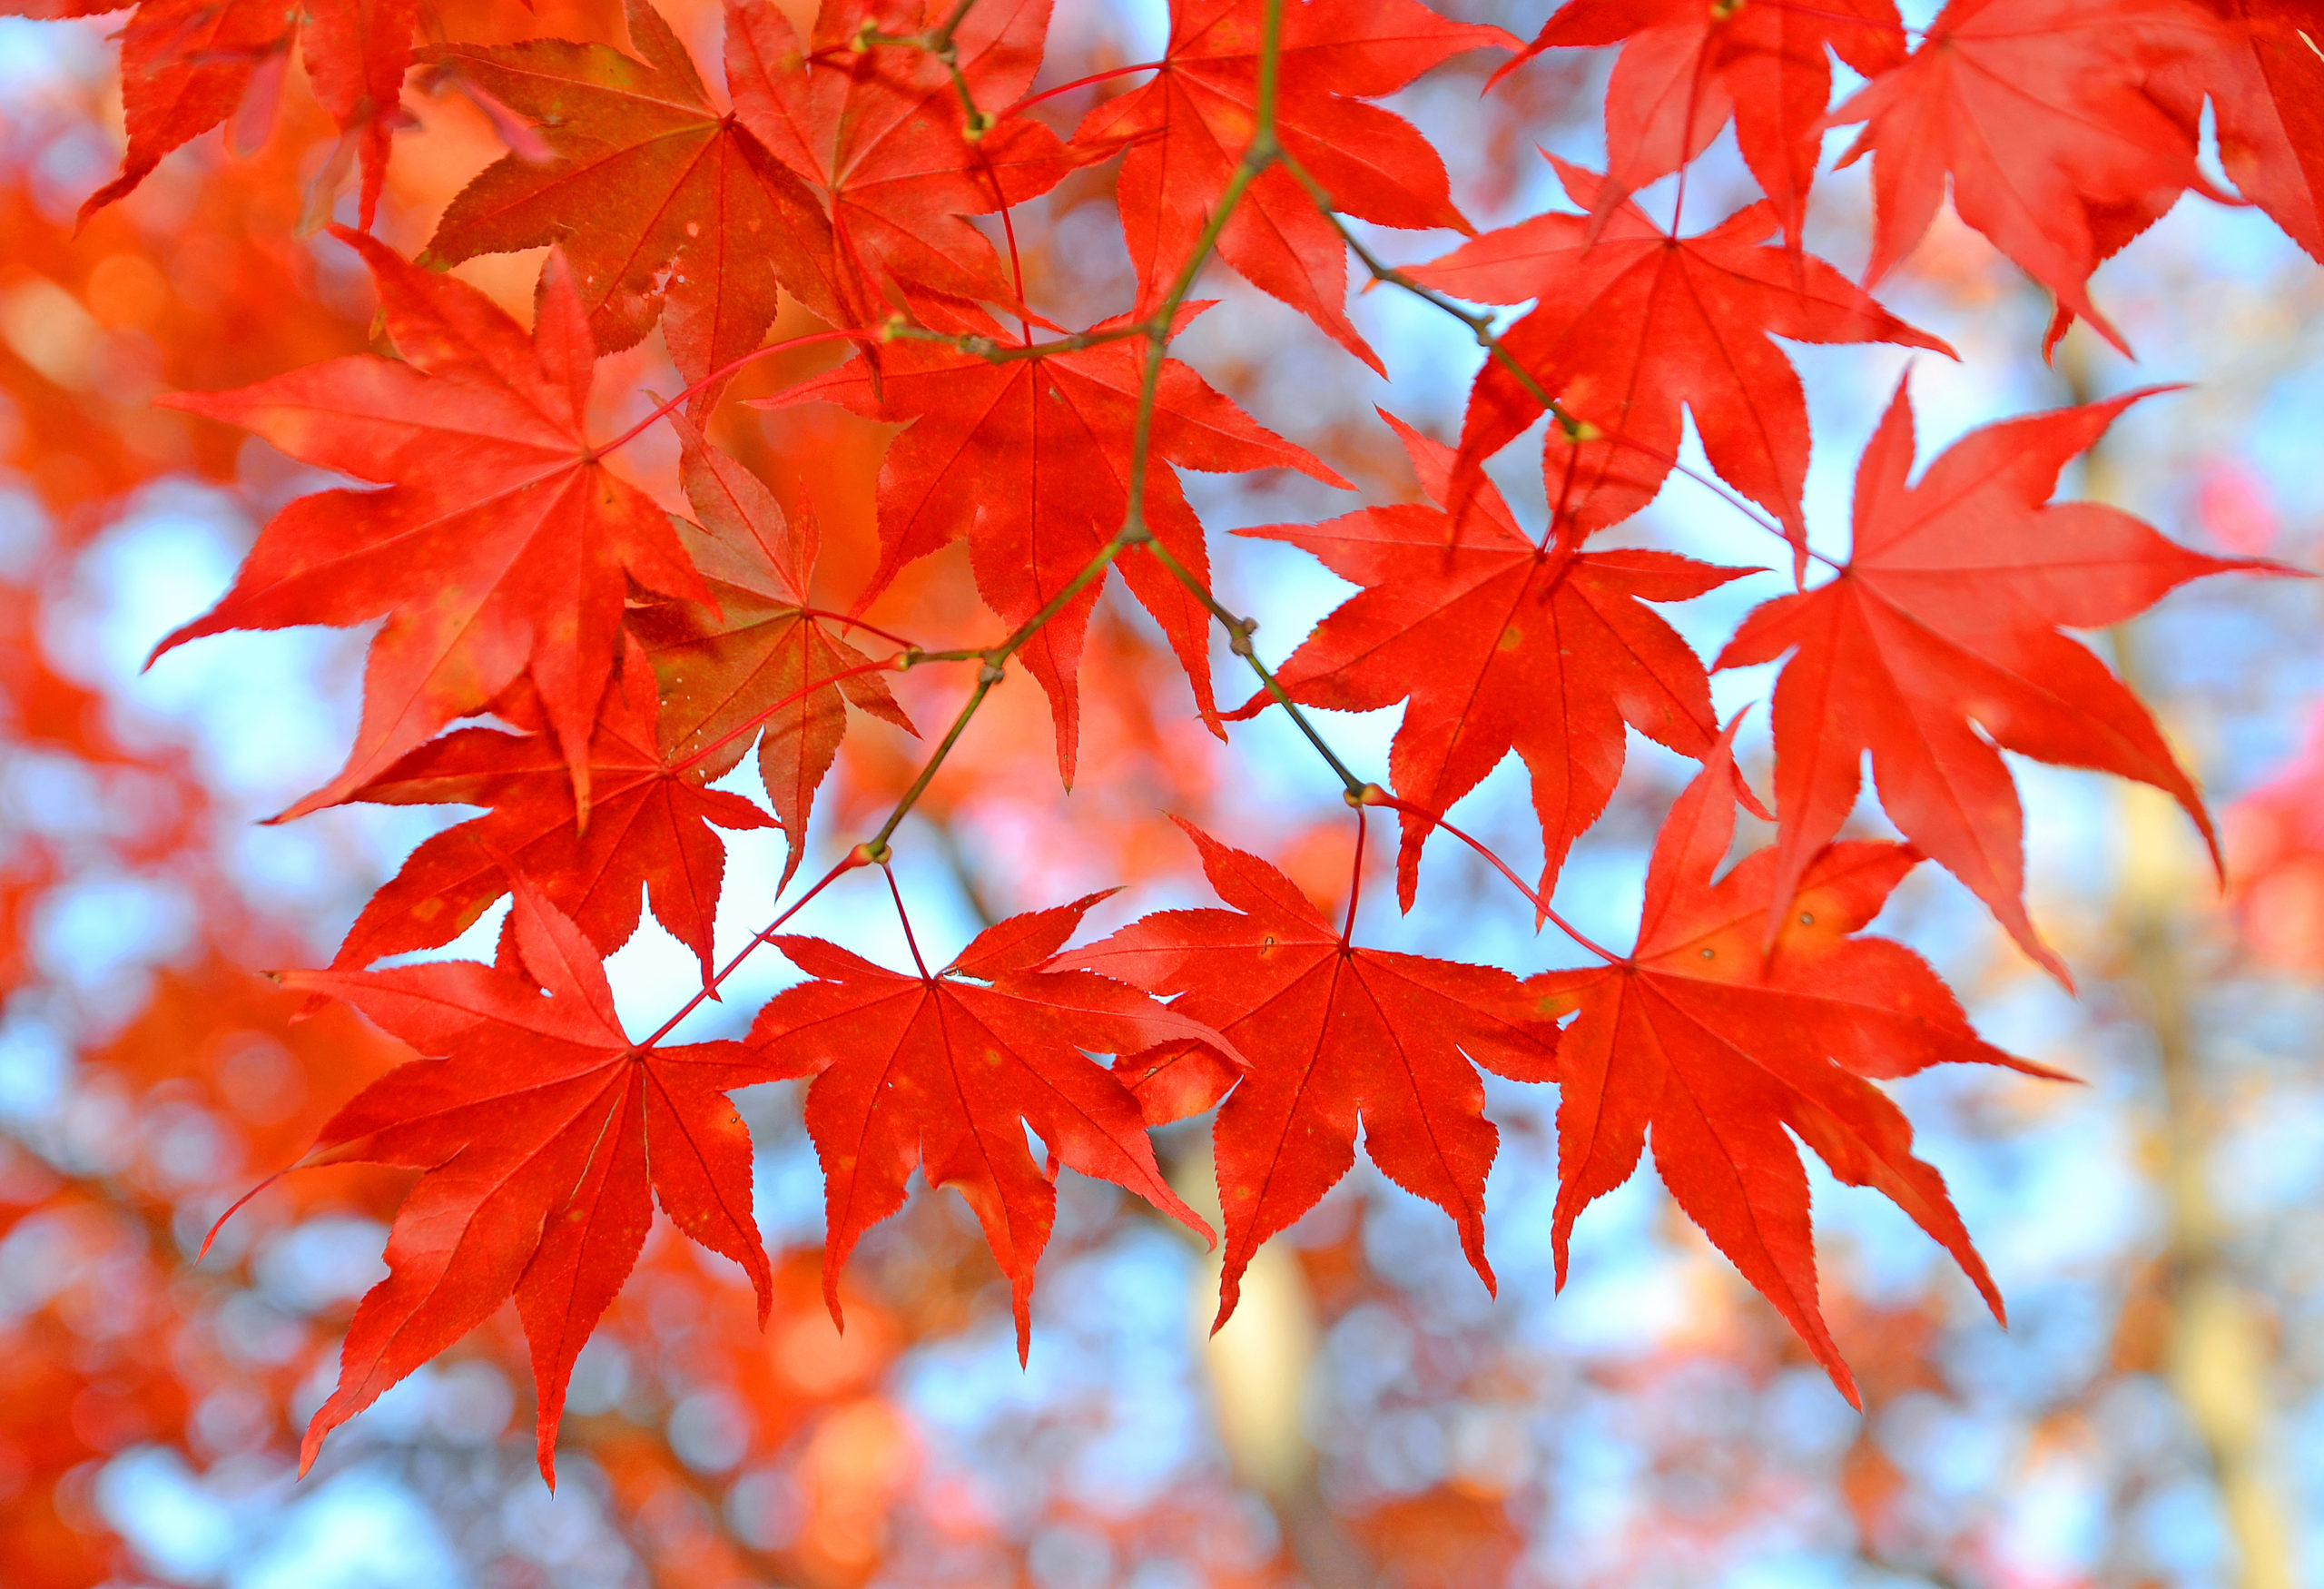 fall red maple leaves shutterstock_301763174